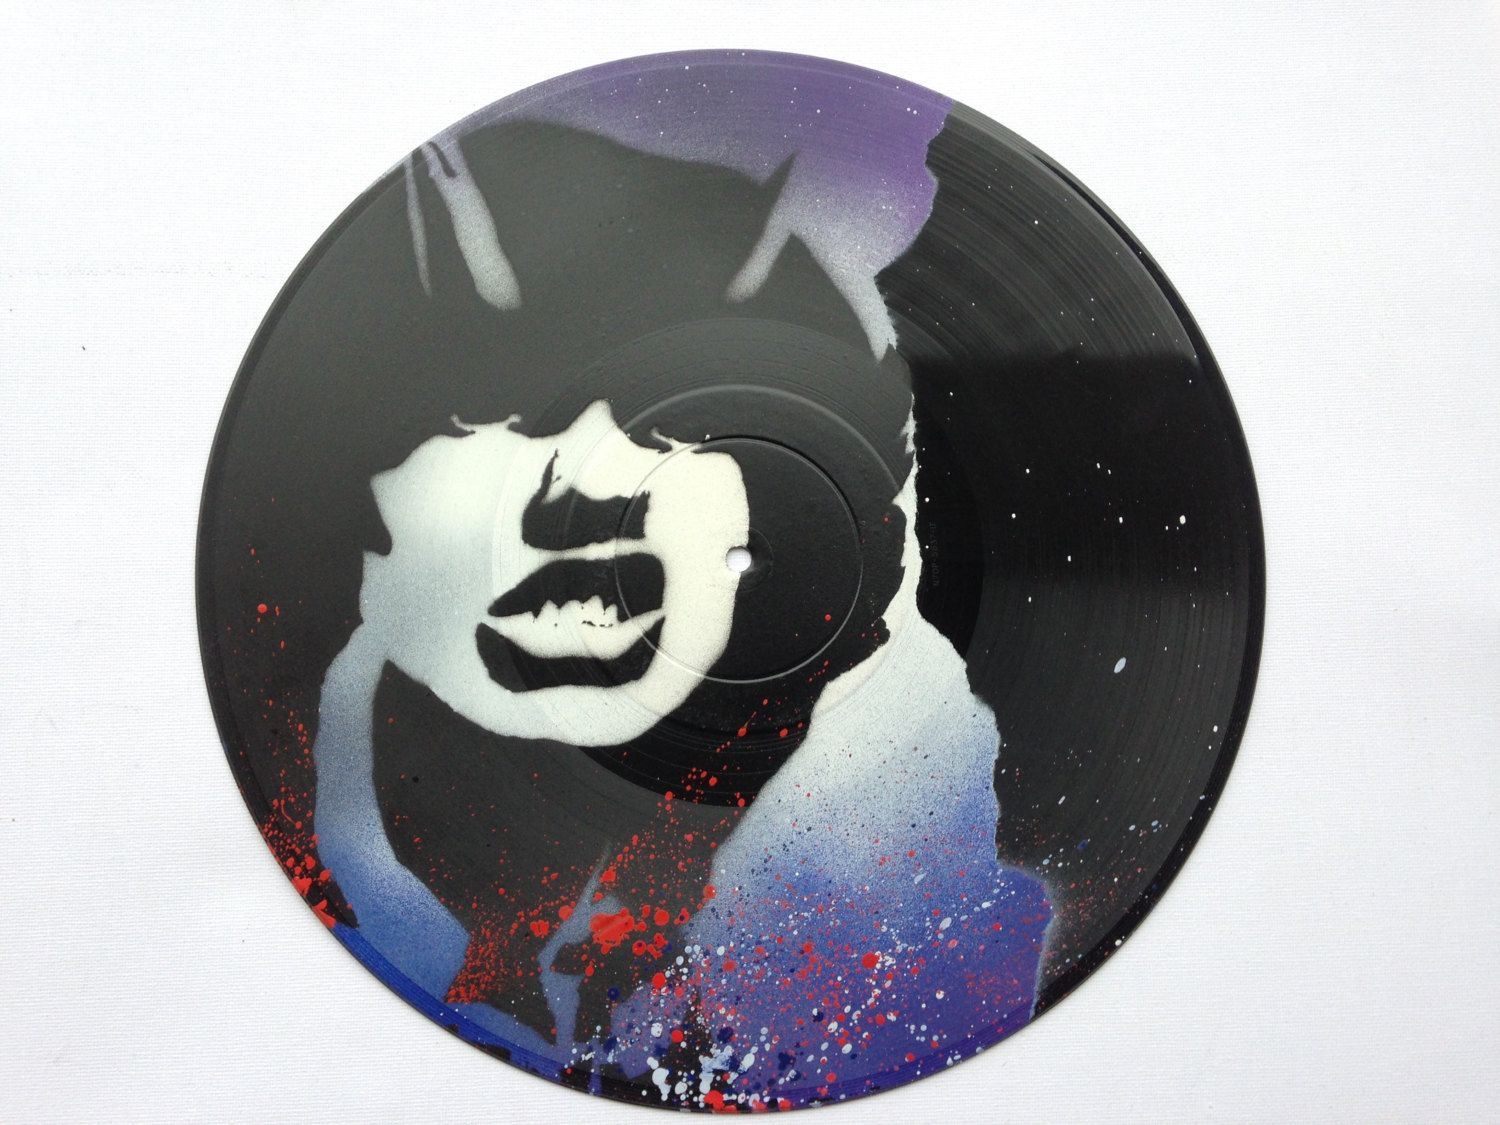 ac dc angus young vinyl record lp 12 spray painting by lillyartglasgow on - Difference Peinture Acrylique Et Vinylique